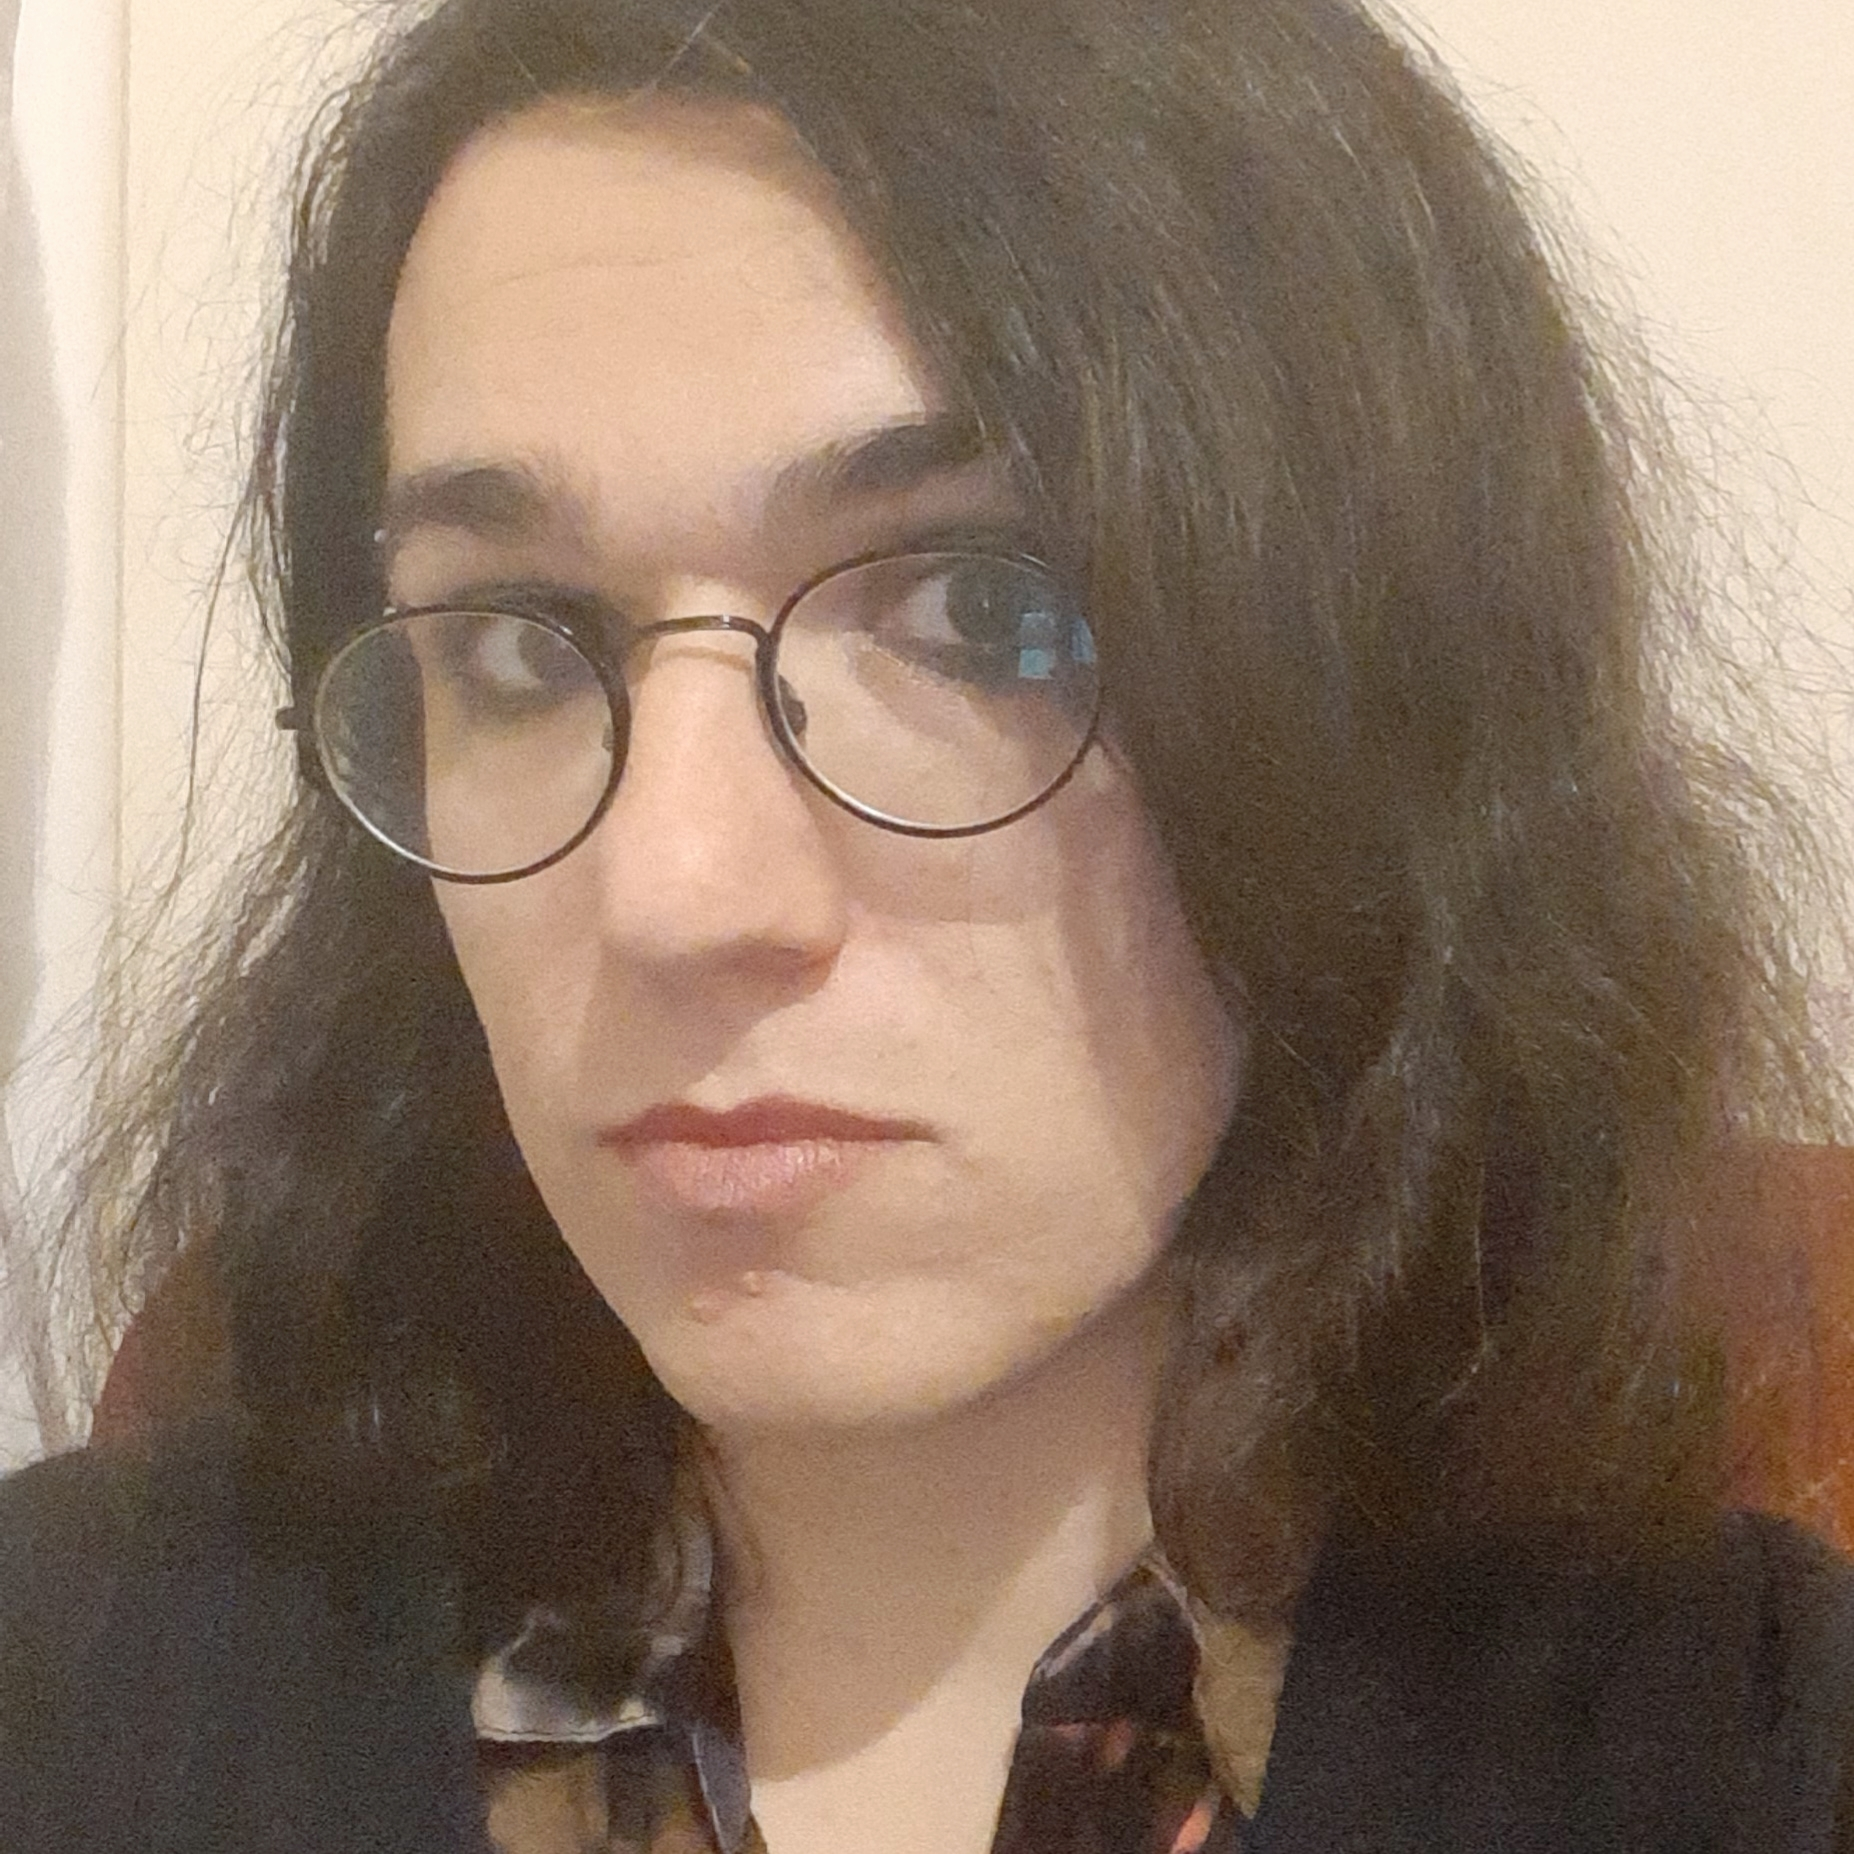 - .CALLIE GARDNER is a poet and editor from Glasgow. Their book naturally it is not. was published last year by The 87 Press and they edit Zarf poetry magazine and its associated pamphlet press Zarf Editions, which has most recently published work by Pratyusha and Alison Rumfitt.